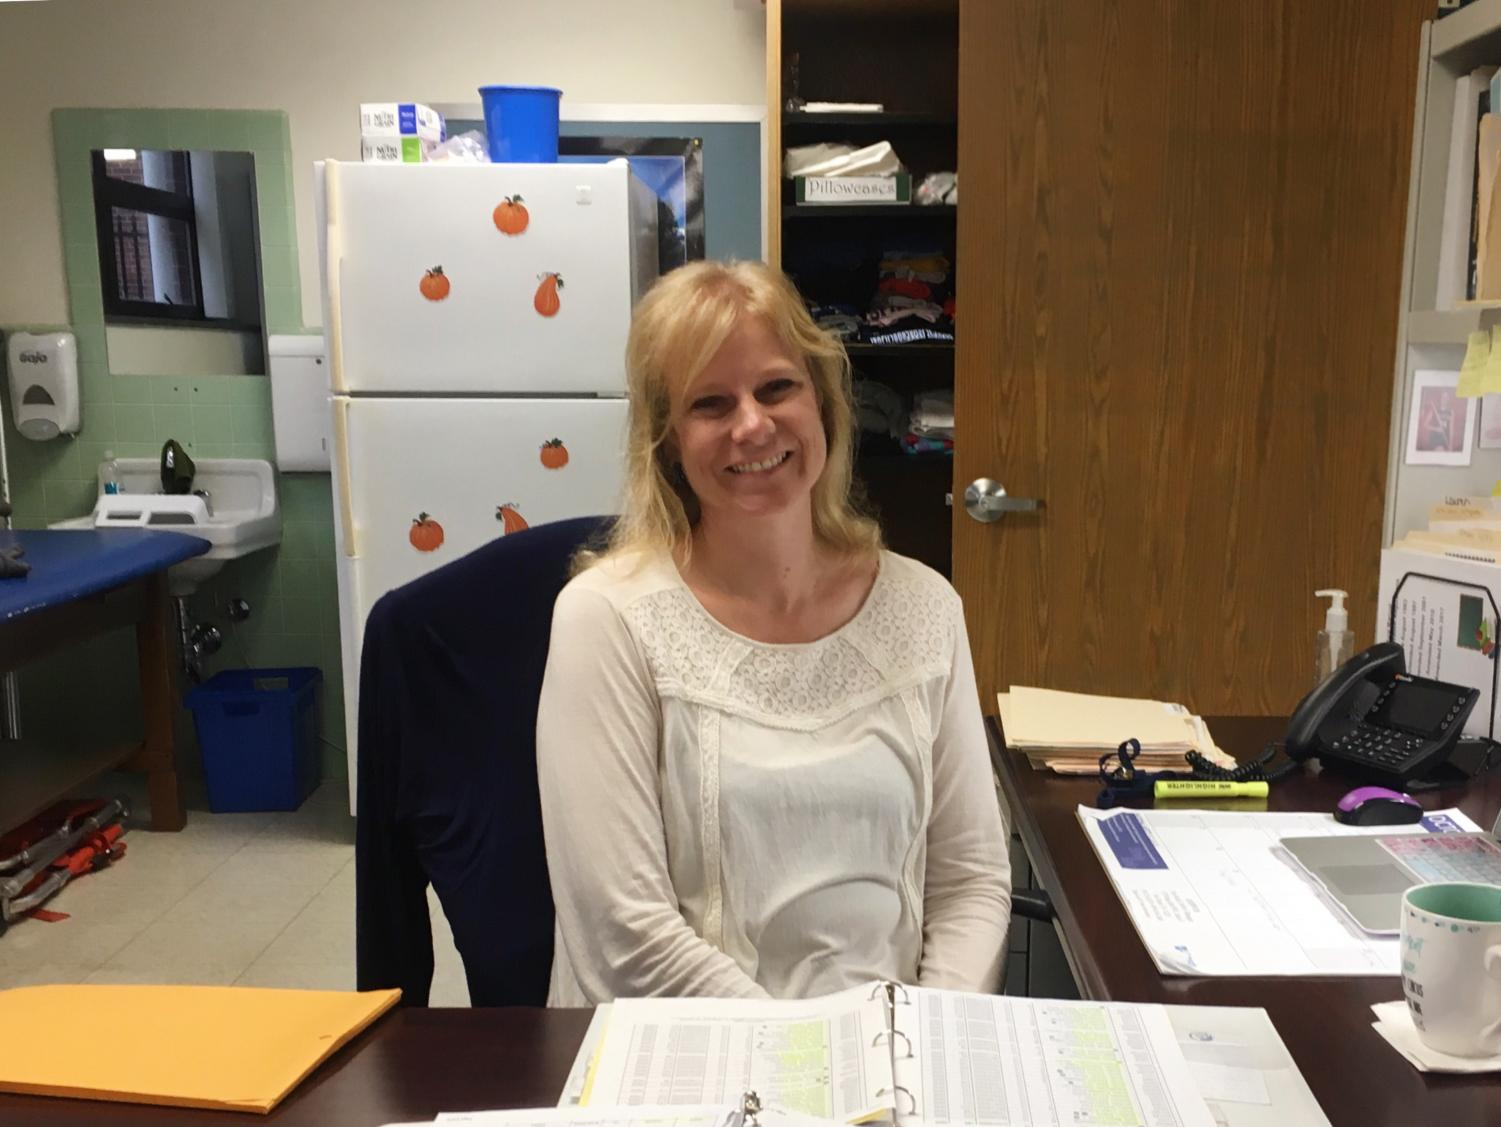 Mrs. Wieder looks forward to working with students.